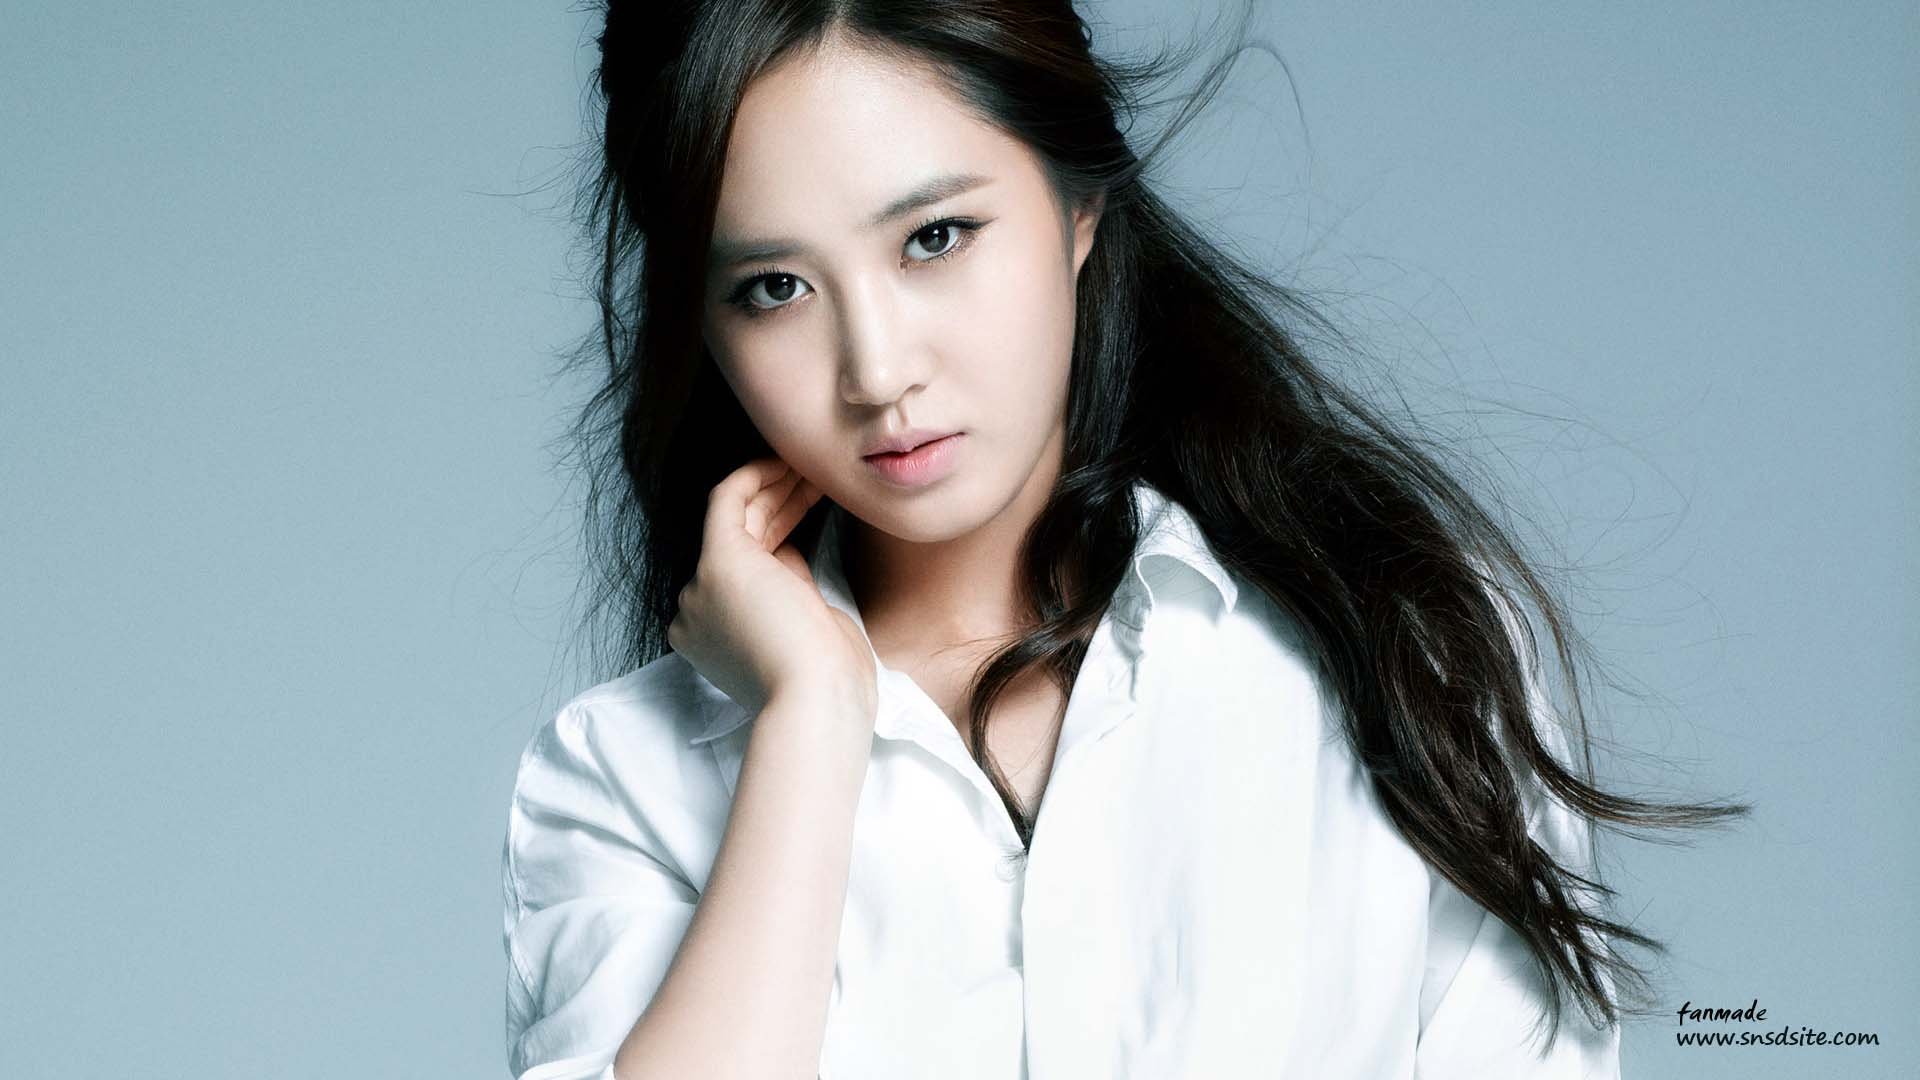 yuri snsd wallpaper 2013 - photo #30